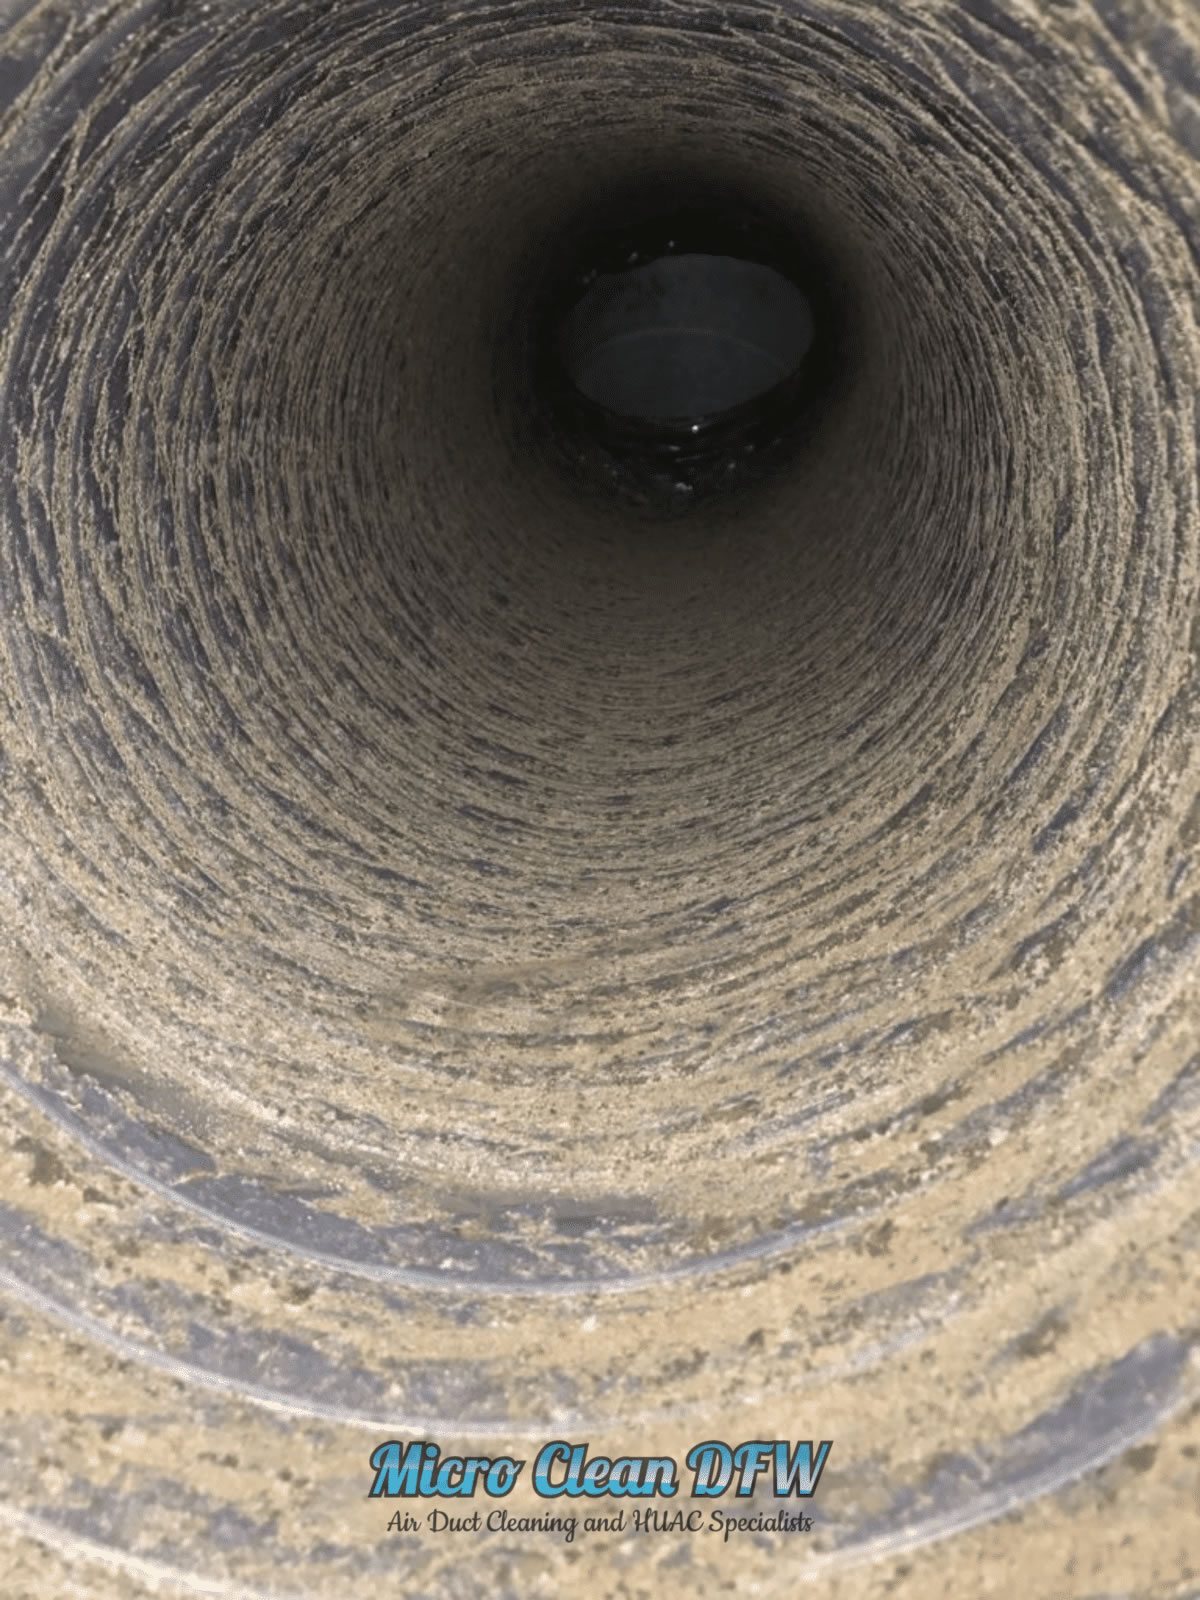 Micro Clean DFW - Commercial Air Duct Cleaning Images - Before